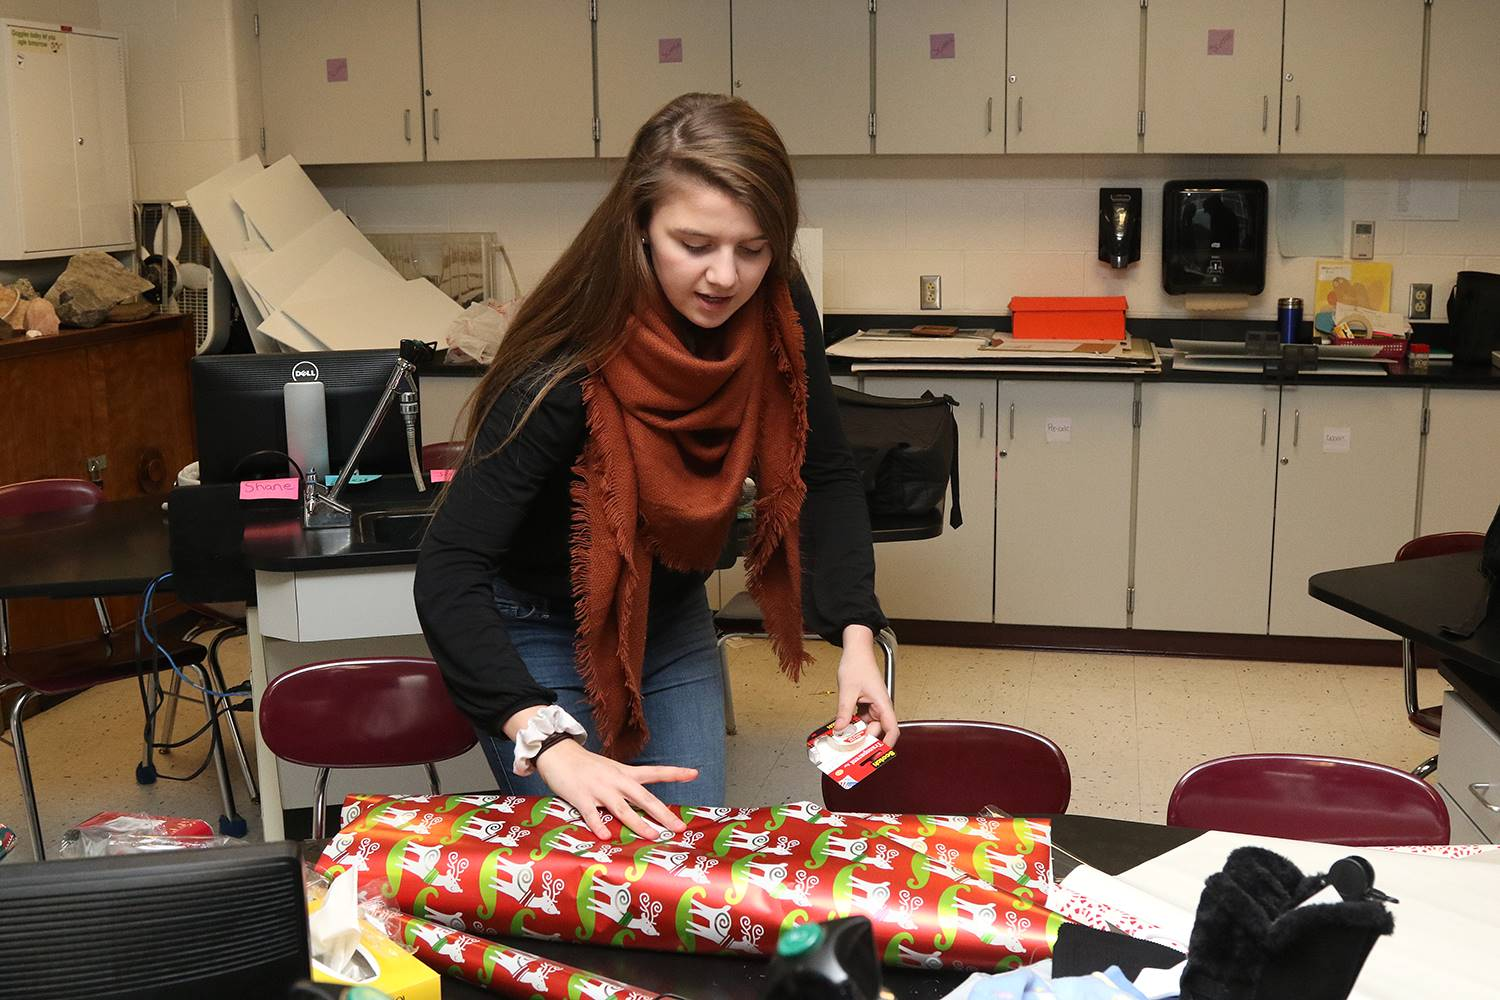 NHS wrapping presents